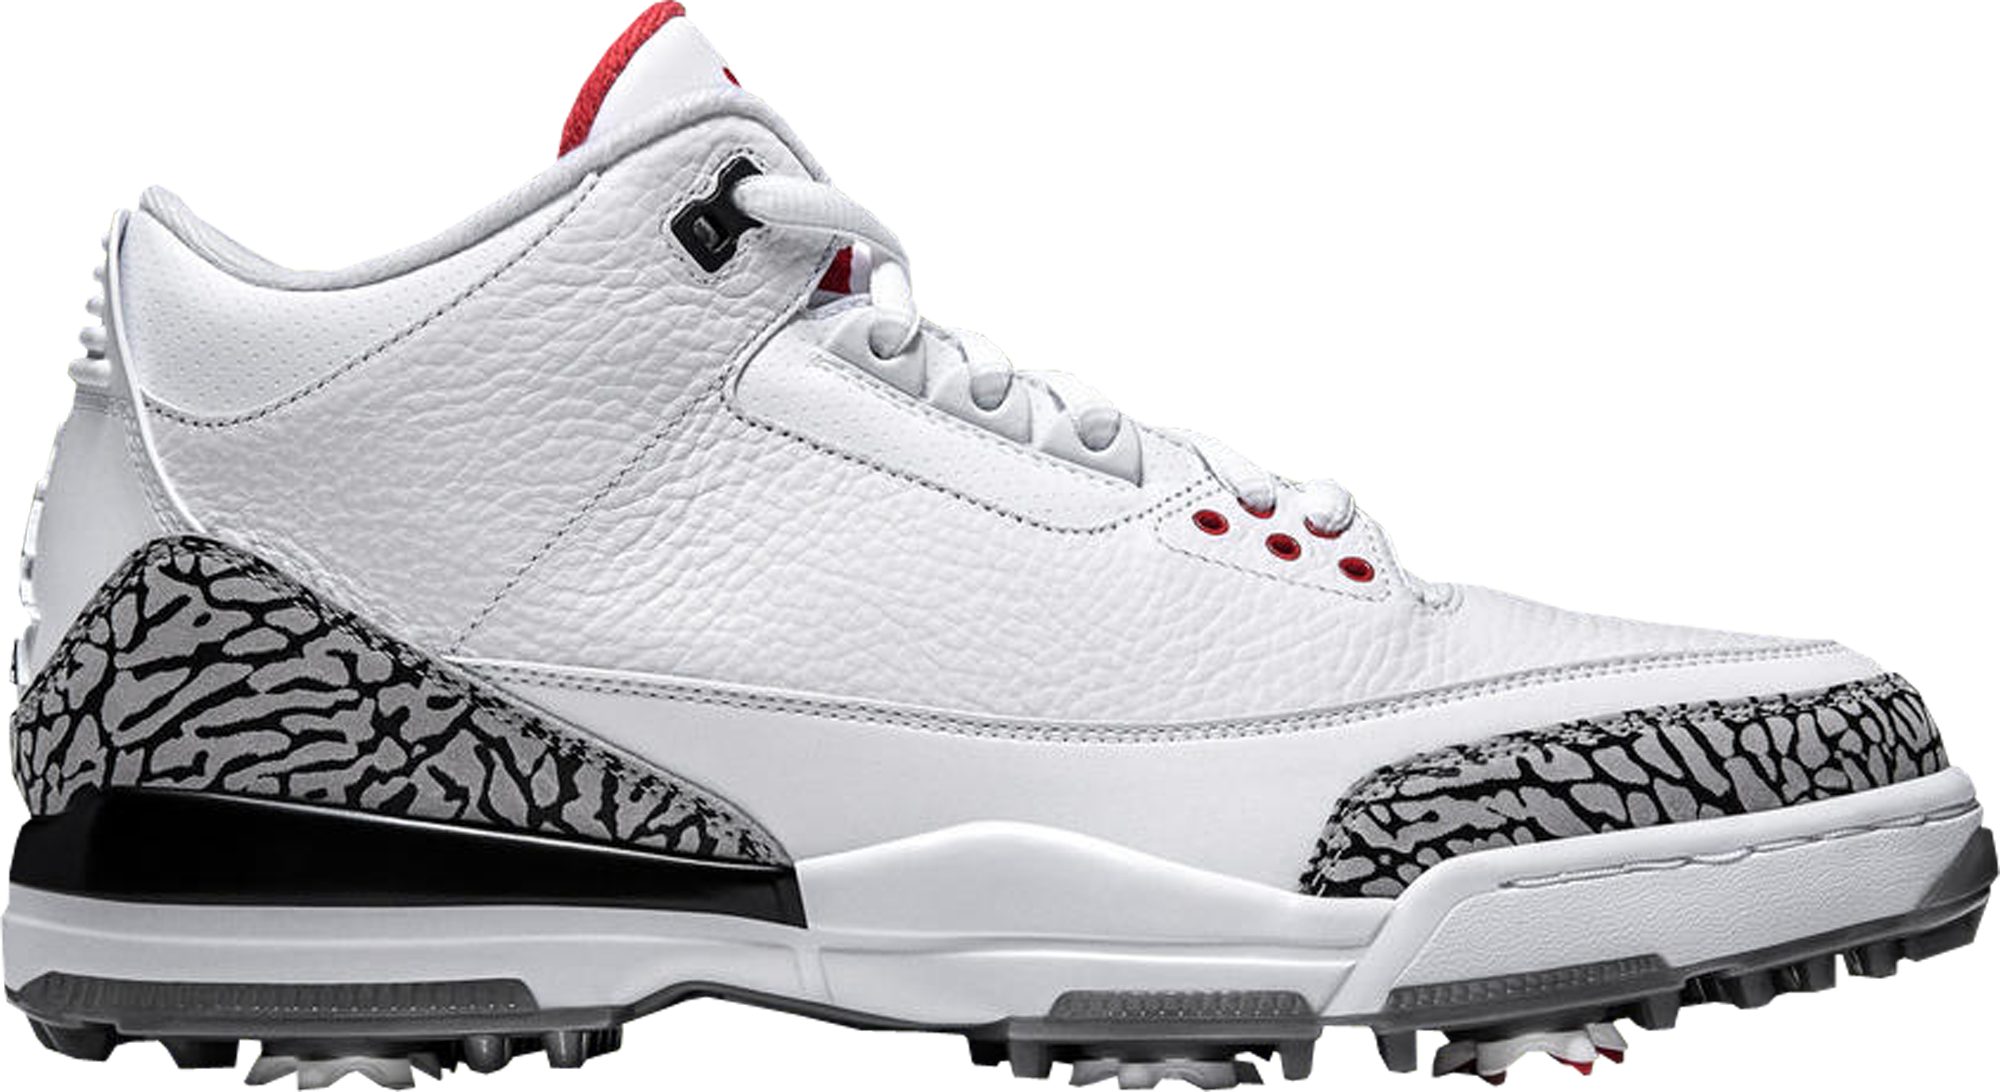 nike air jordan 3 retro golf shoes